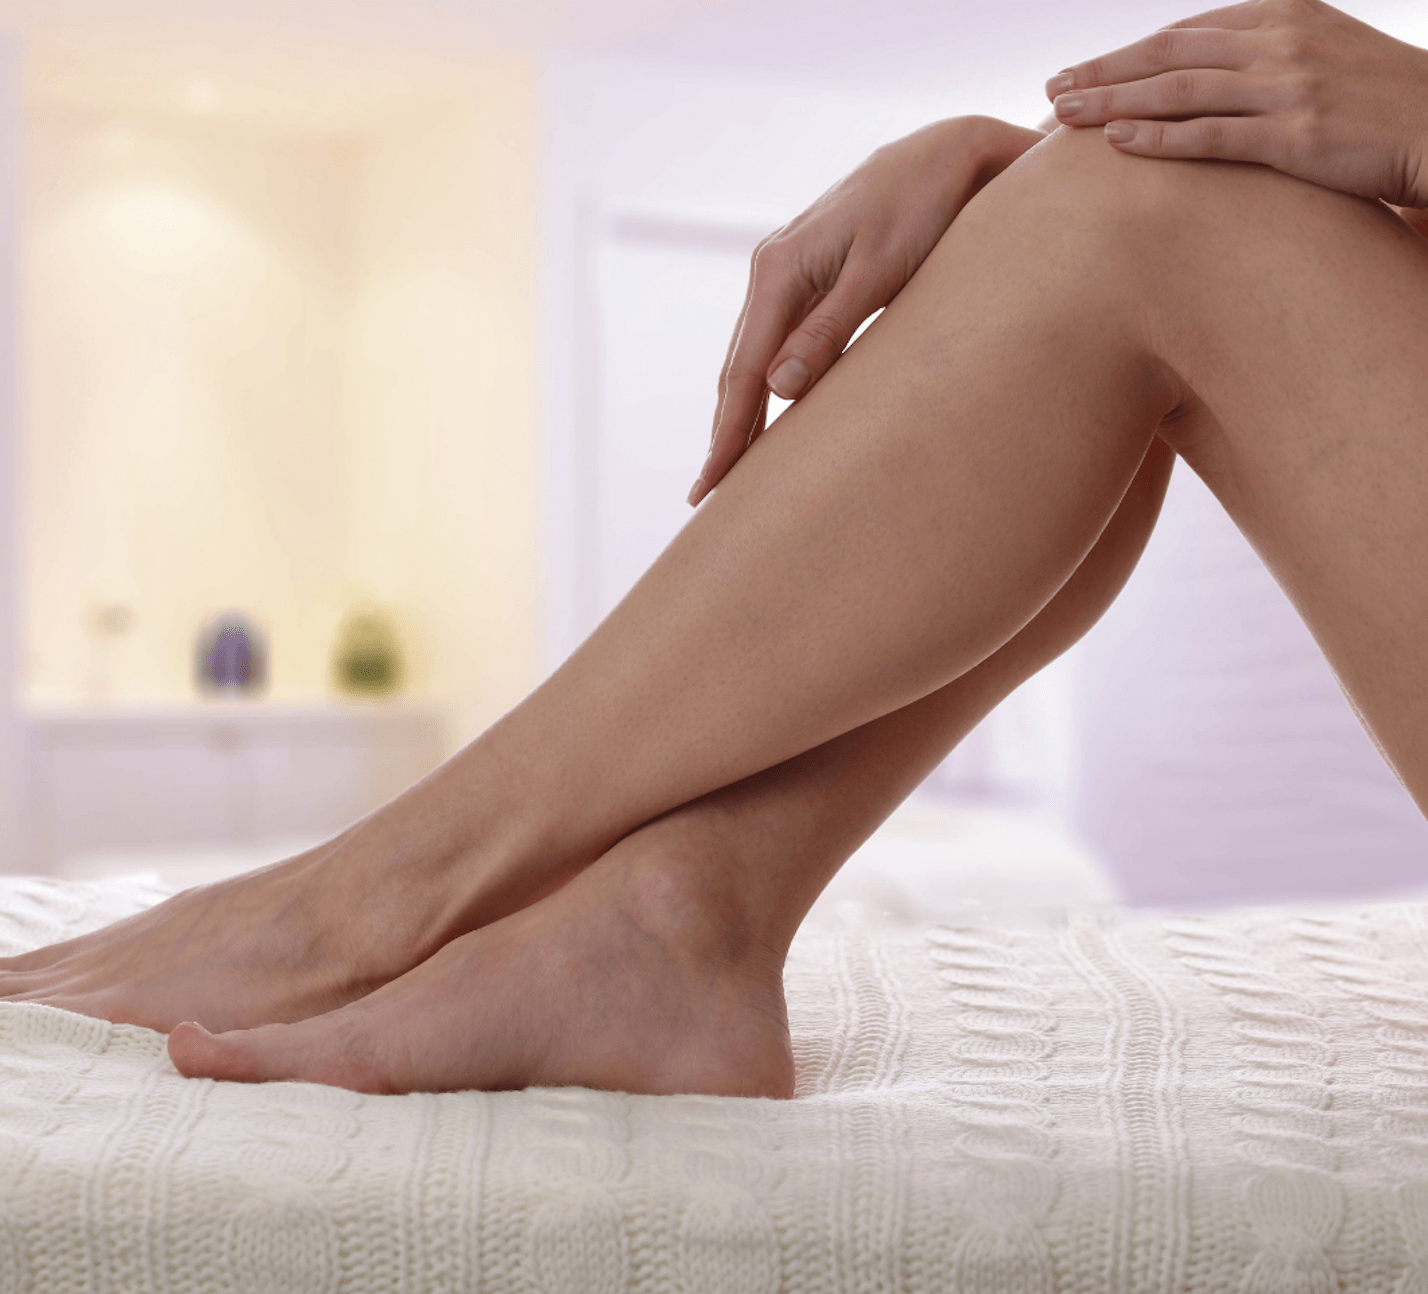 Why laser hair removal is worth it?